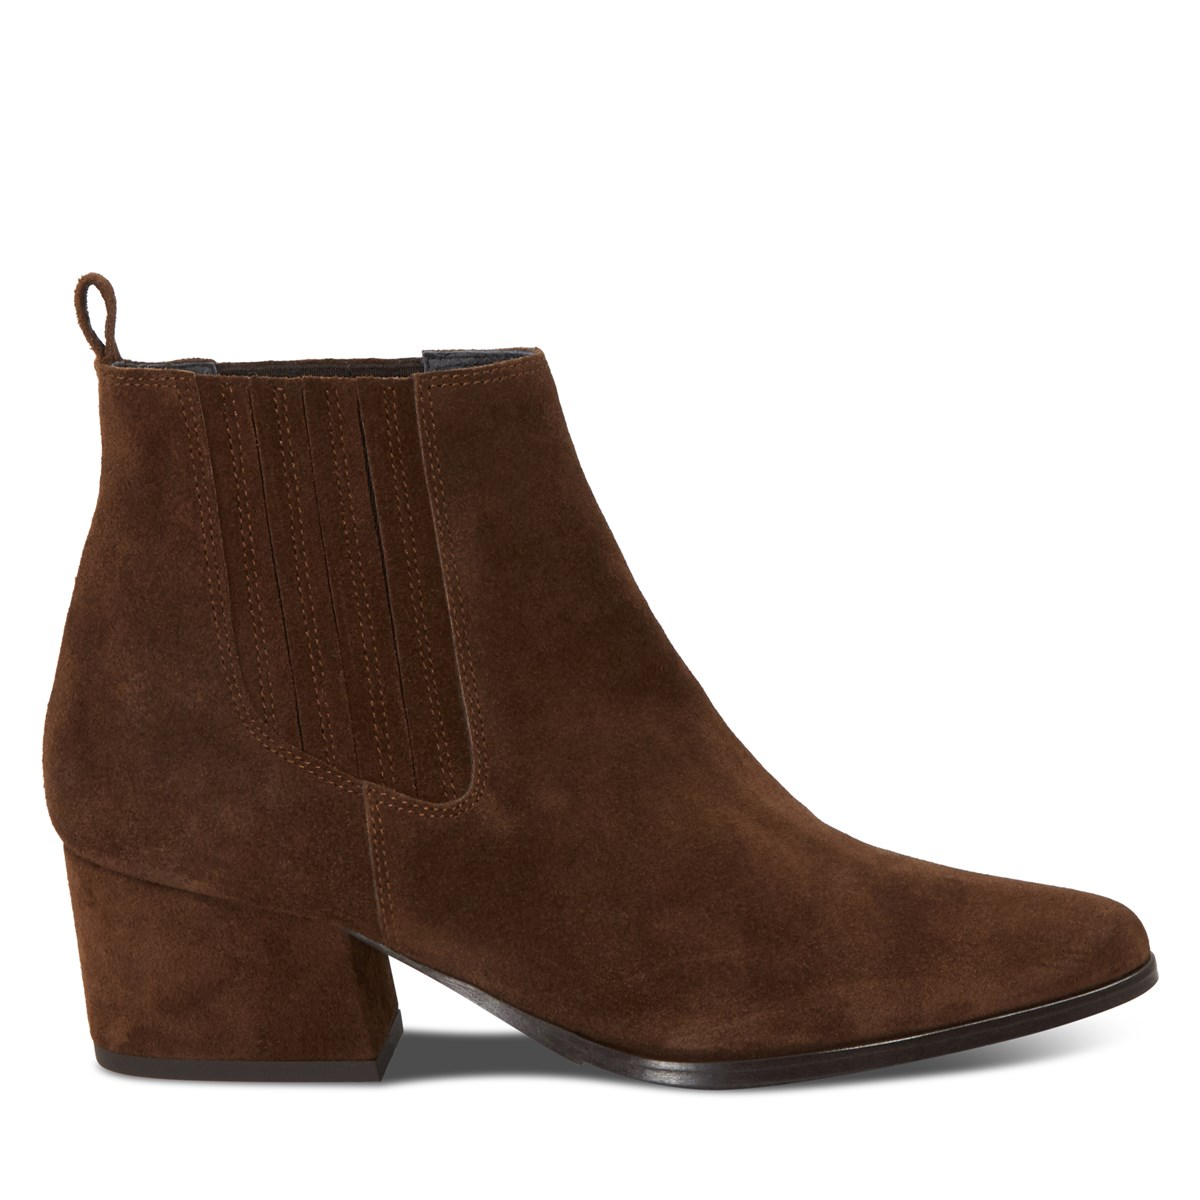 Women's Cataleya Slip On Ankle Boots in Brown Suede